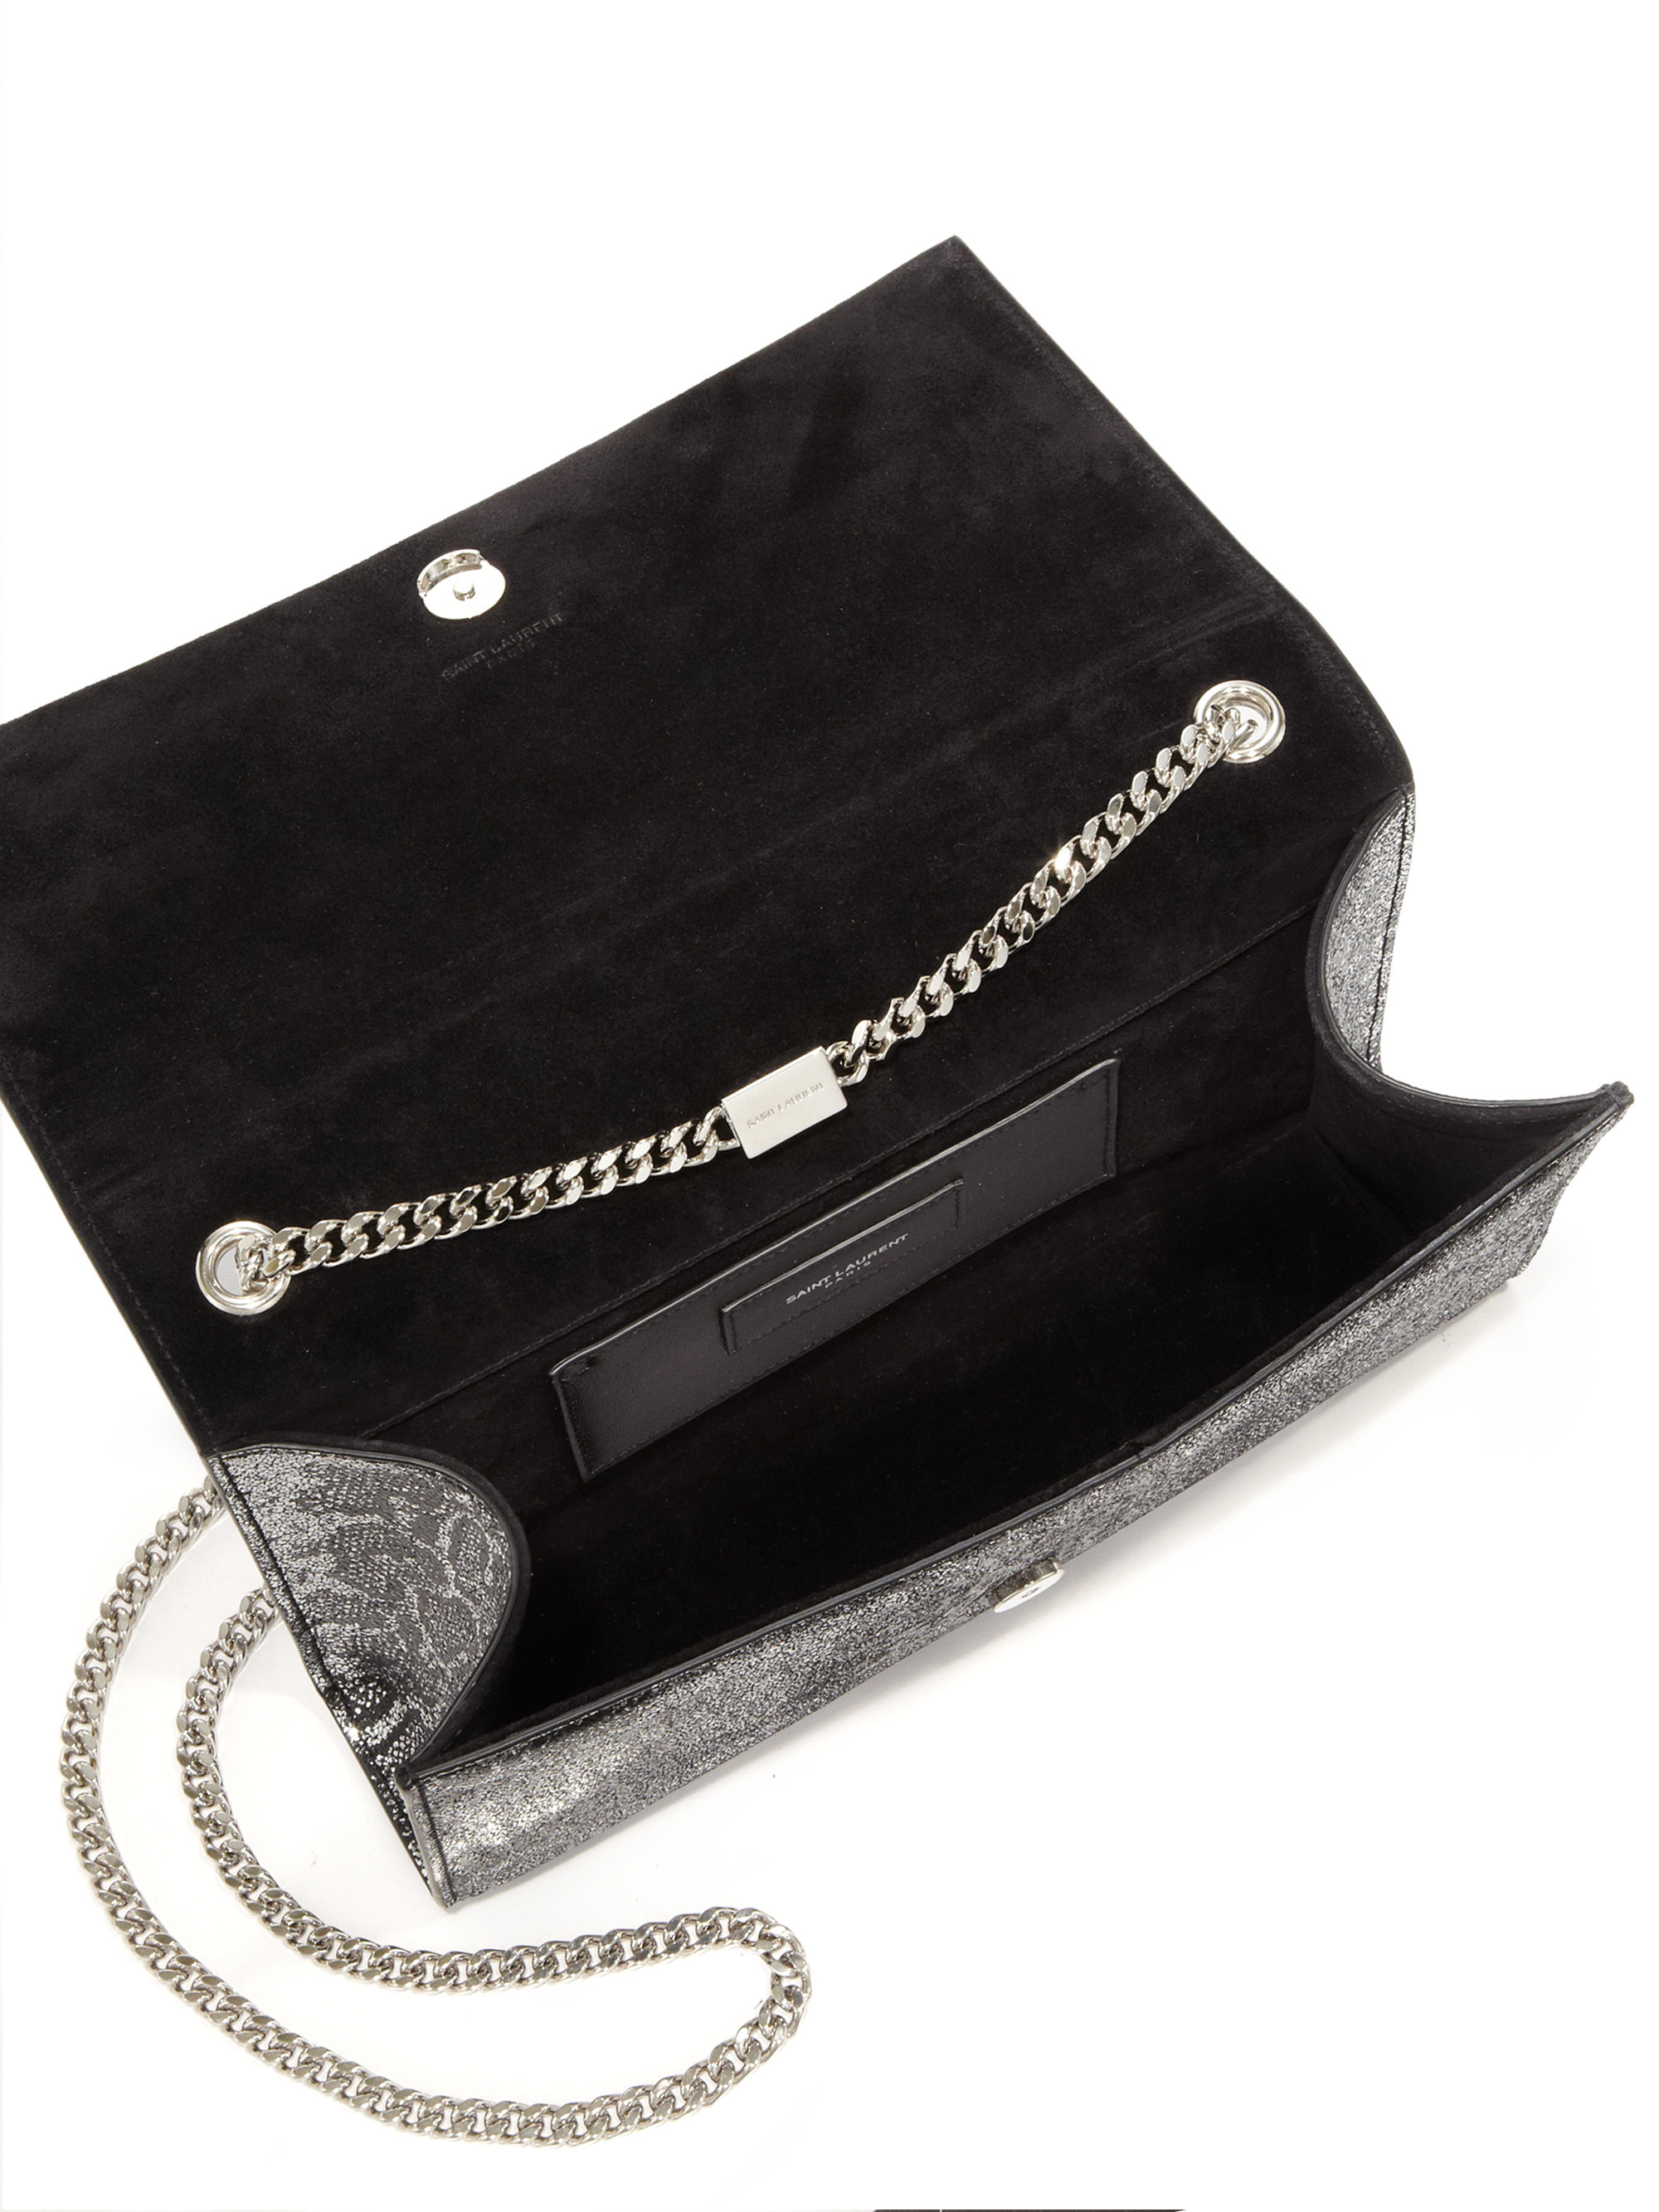 yves saint laurent belle de jour clutch bag large - Saint laurent Monogram Medium Metallic Python-embossed Tassel ...